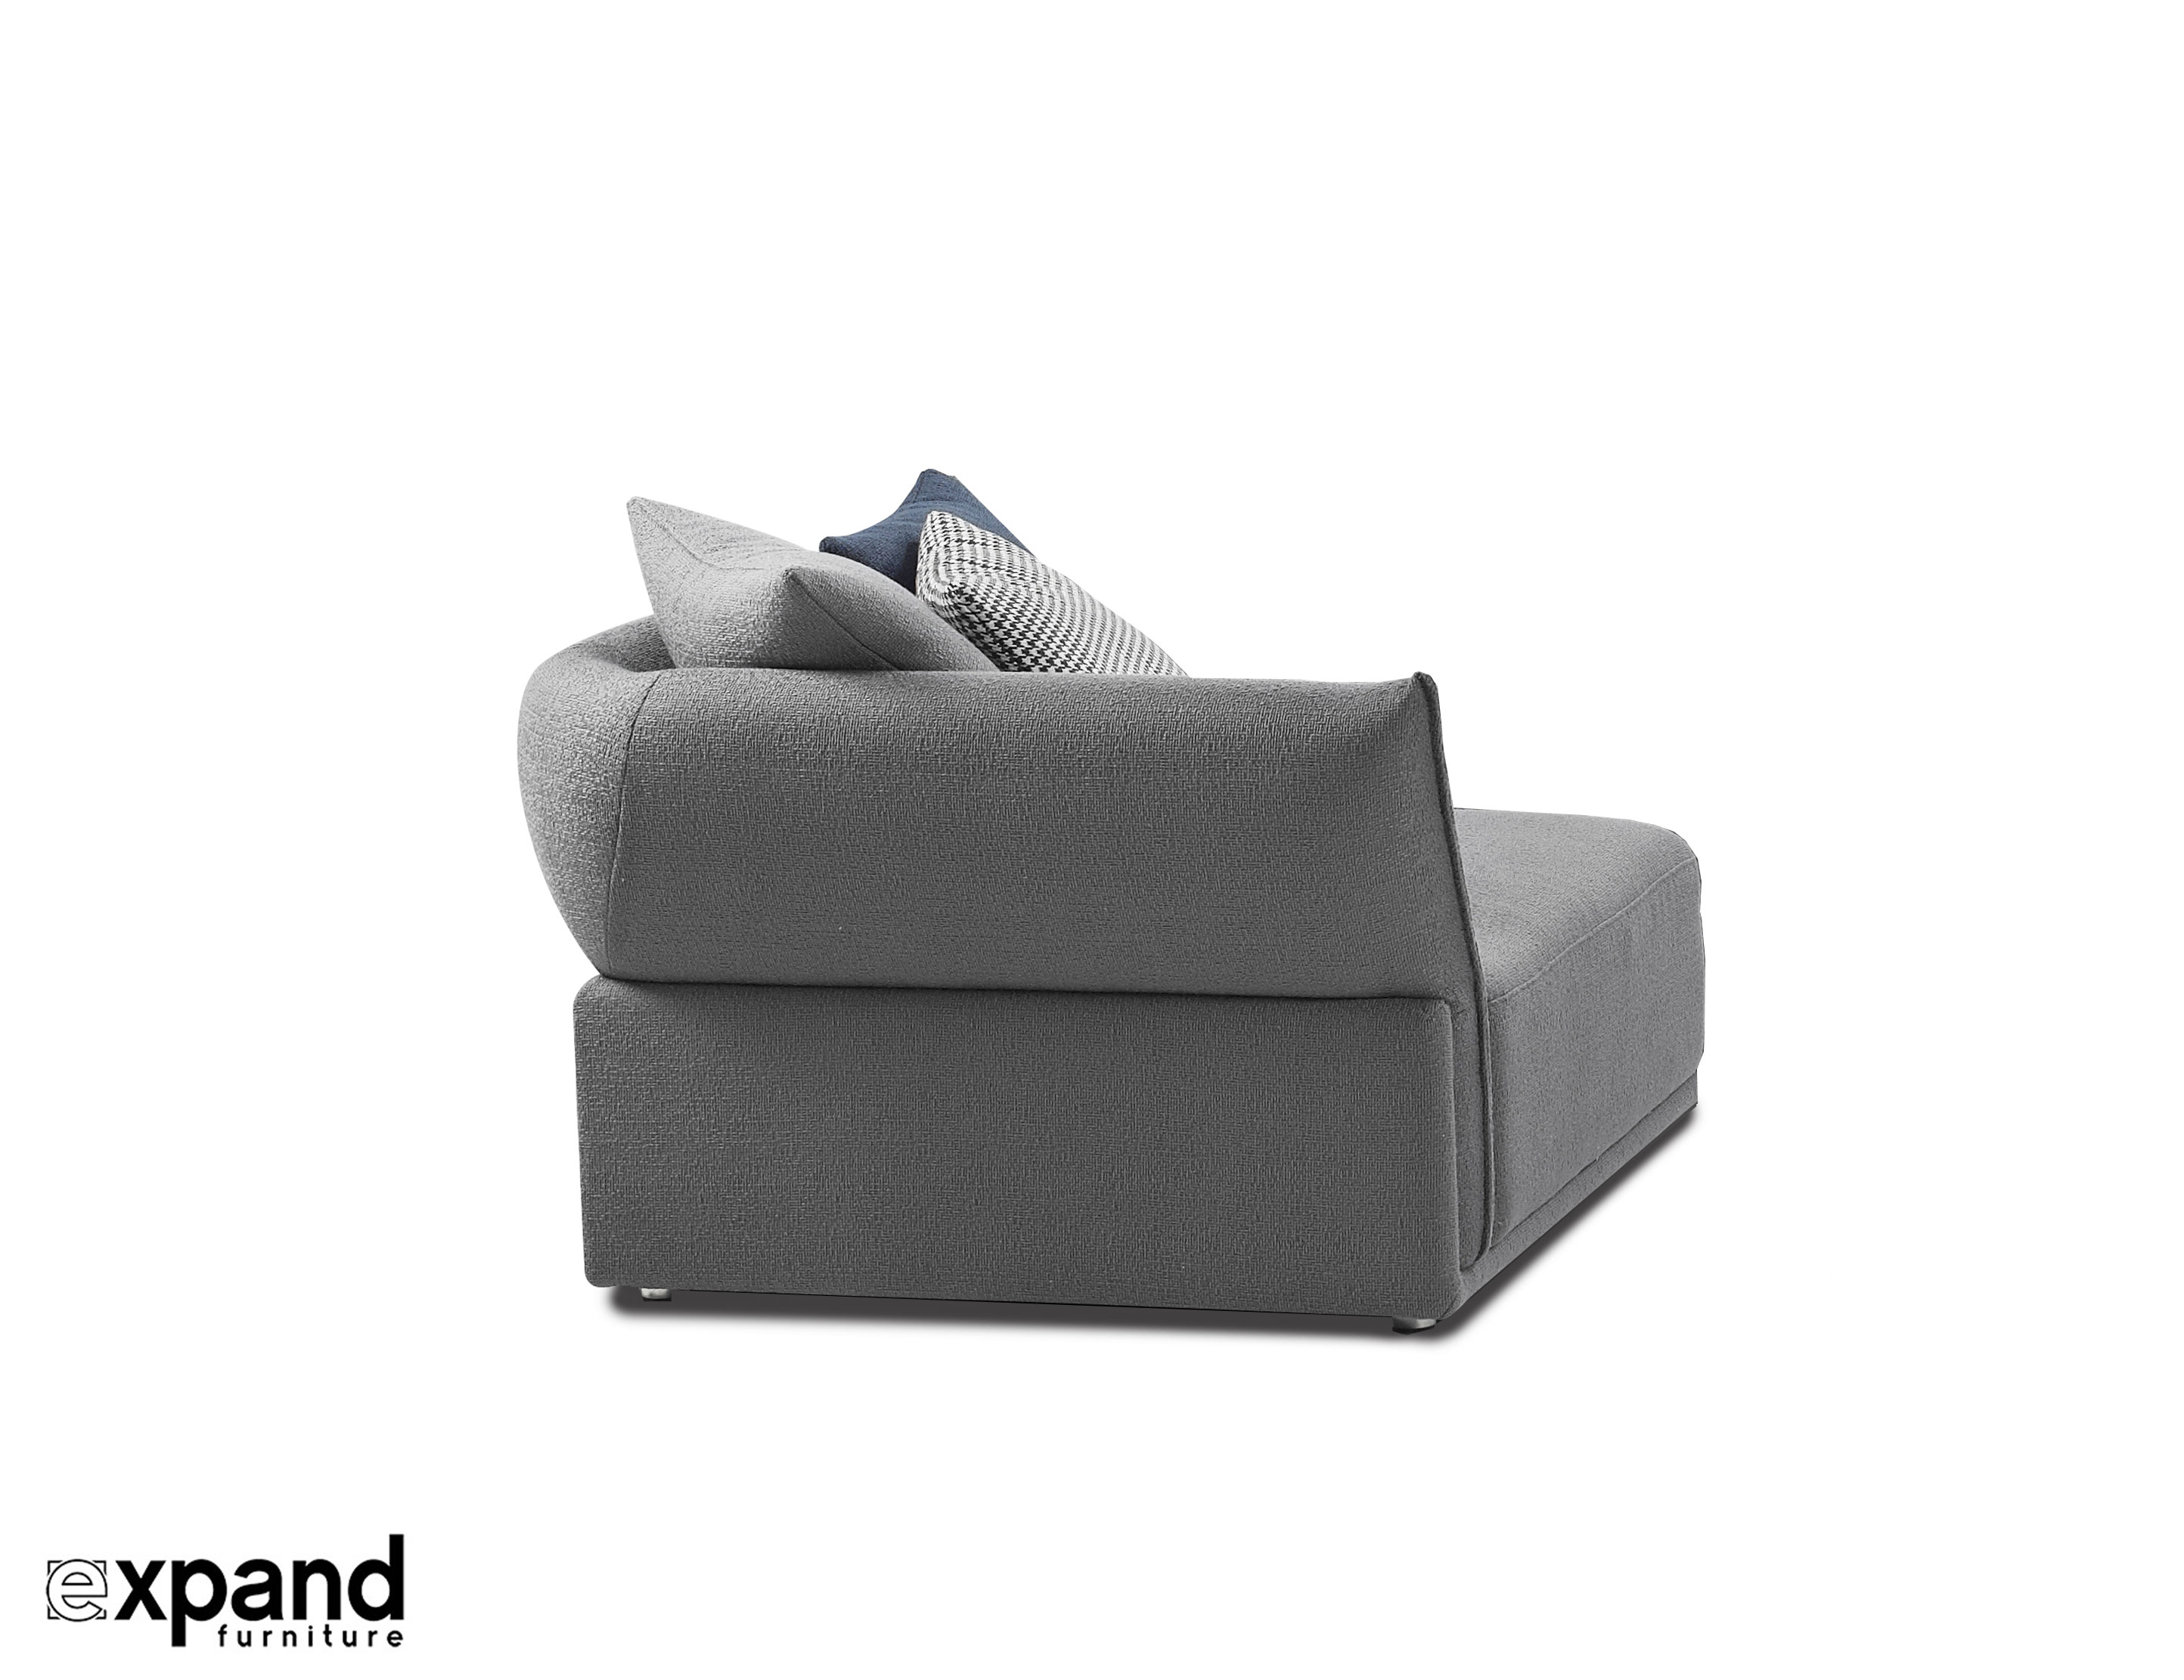 Stratus Corner Couch Modular Sofa Piece Expand Furniture